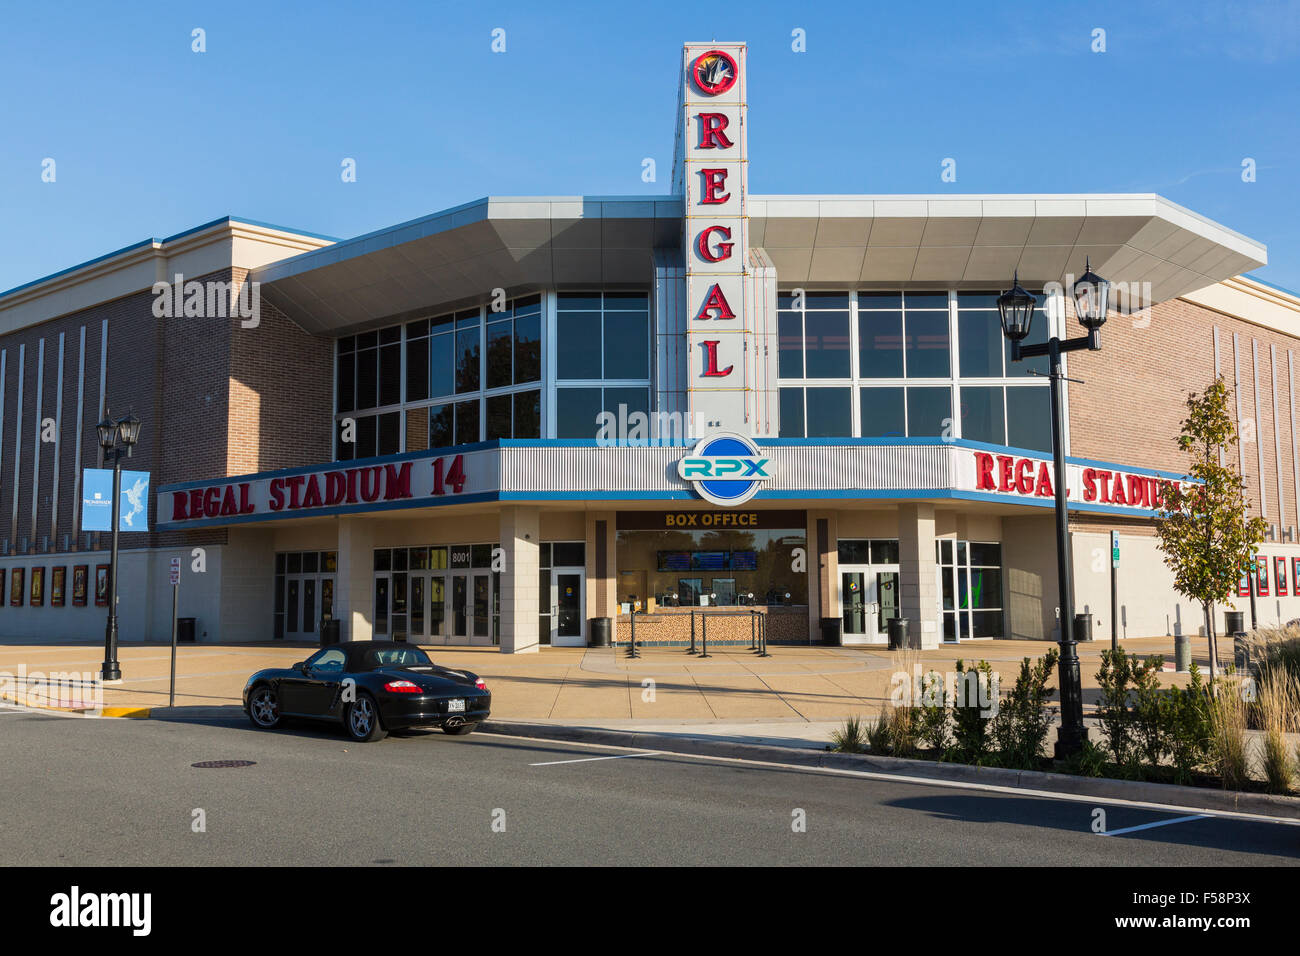 regal cinema high resolution stock photography and images alamy https www alamy com stock photo regal cinema in central shopping street in virginia gateway shopping 89318094 html